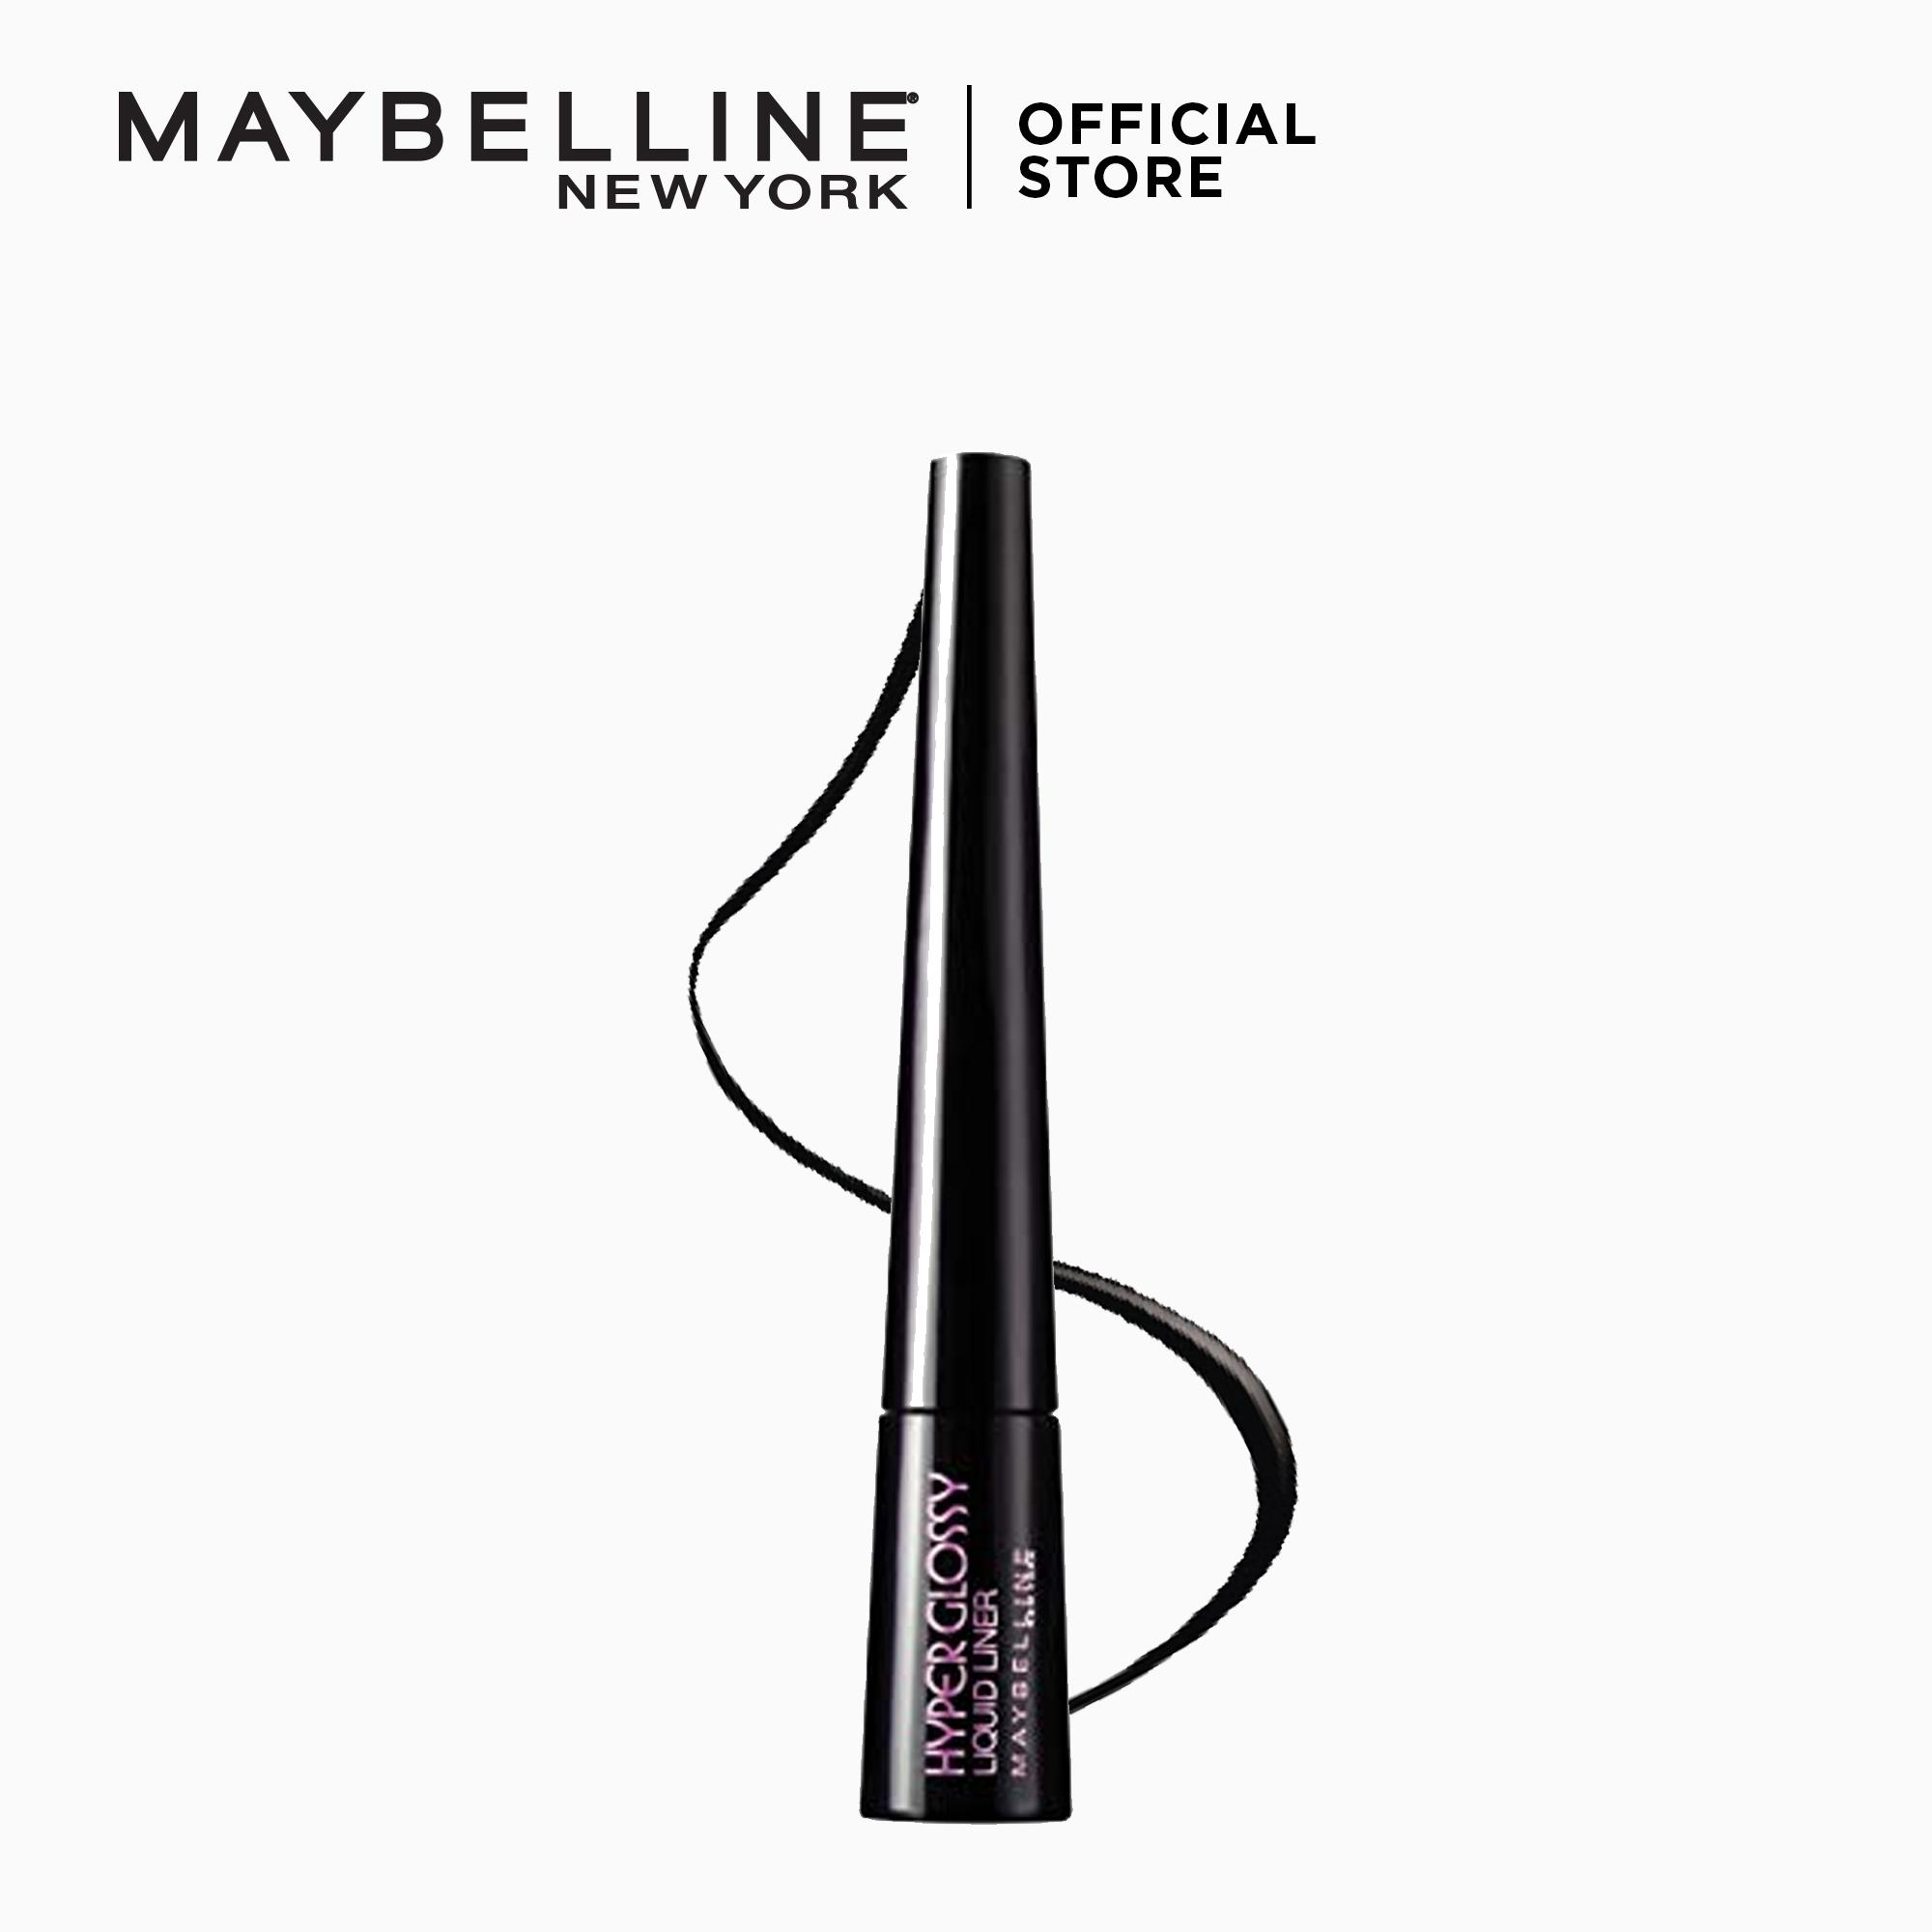 Hyperglossy Liquid Dip Pen Eyeliner - Black [Ultra Glossy] by Maybelline